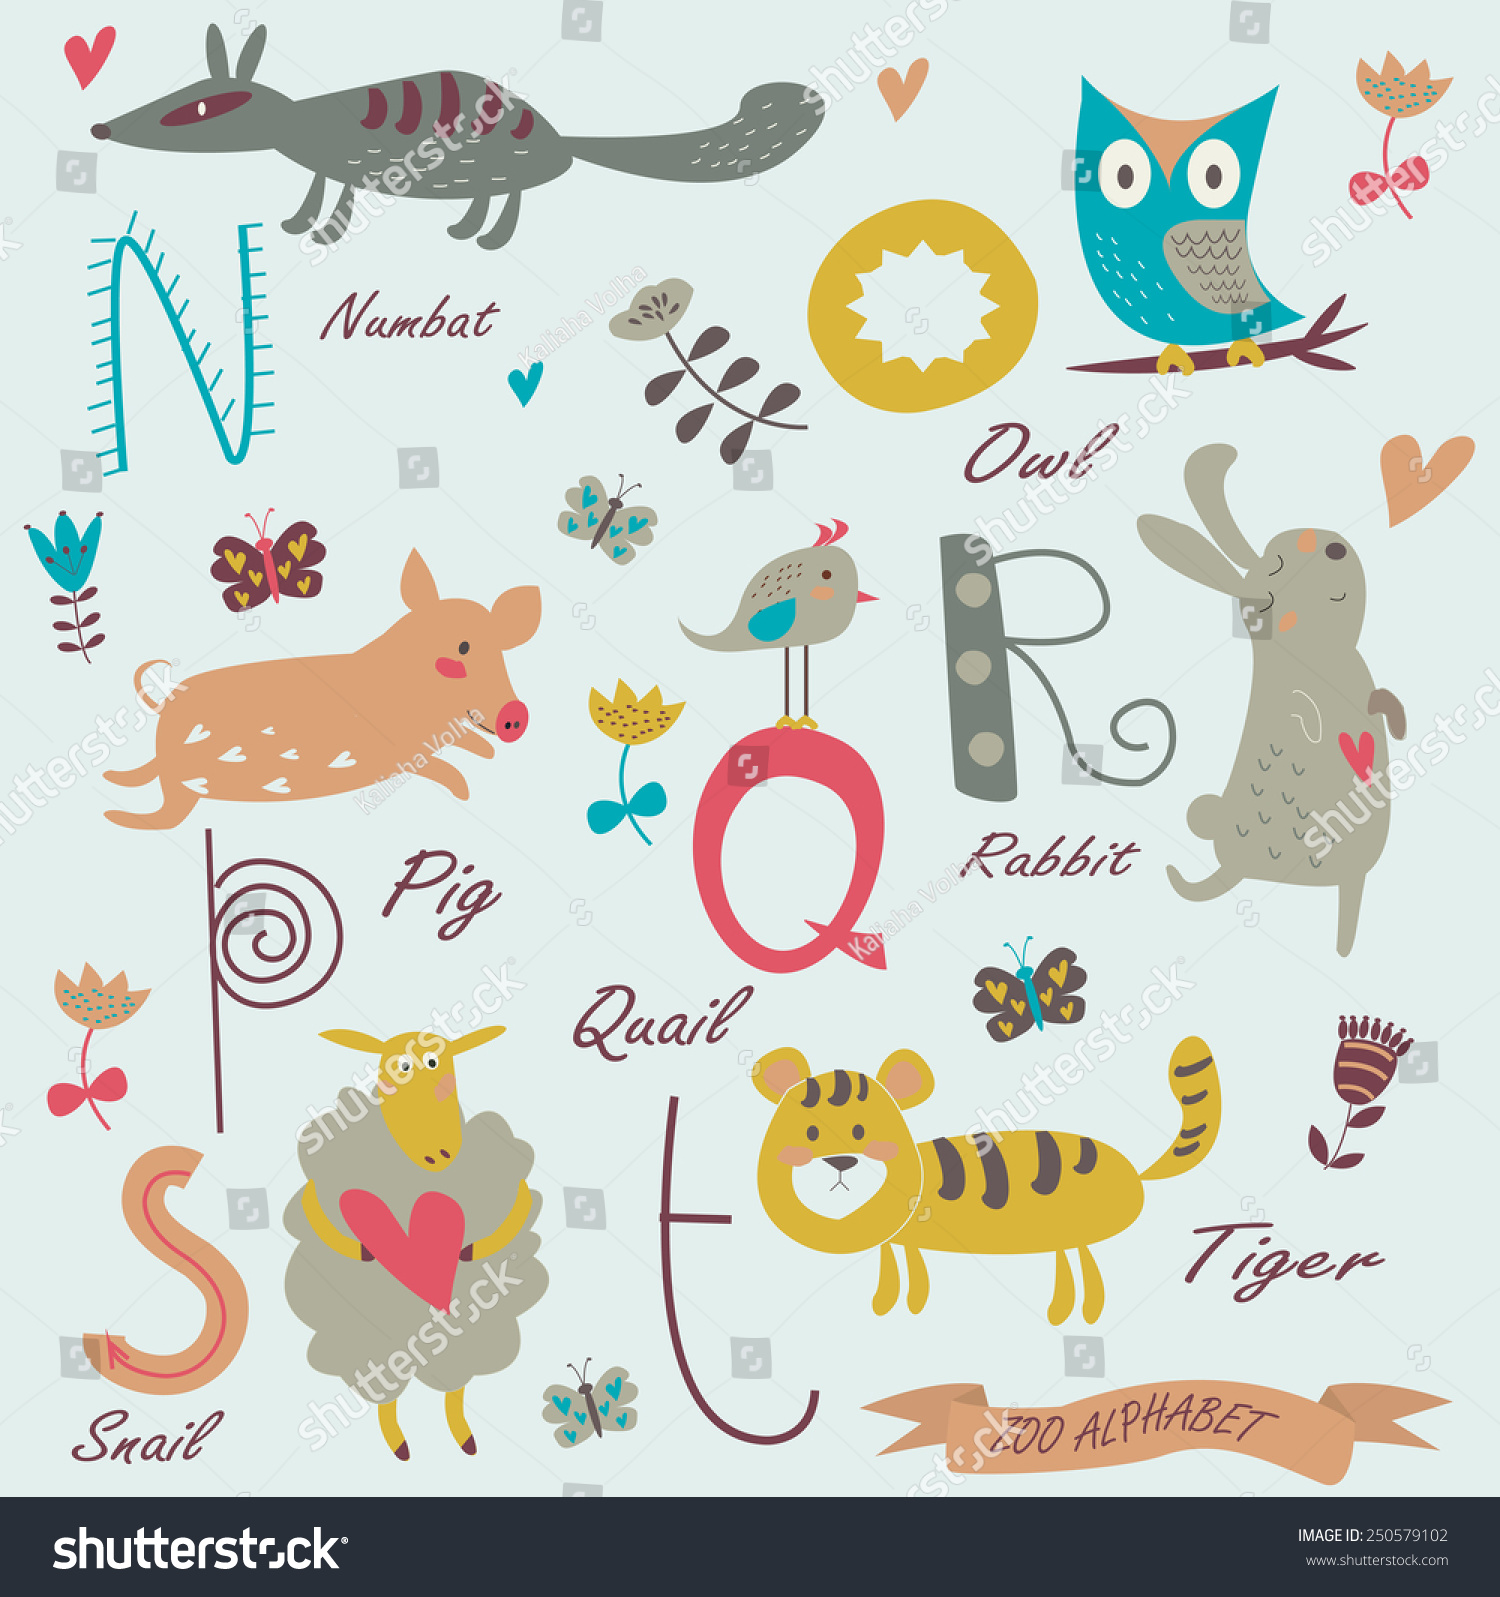 Animals That Start With The Letter N In Spanishart4search.com ...